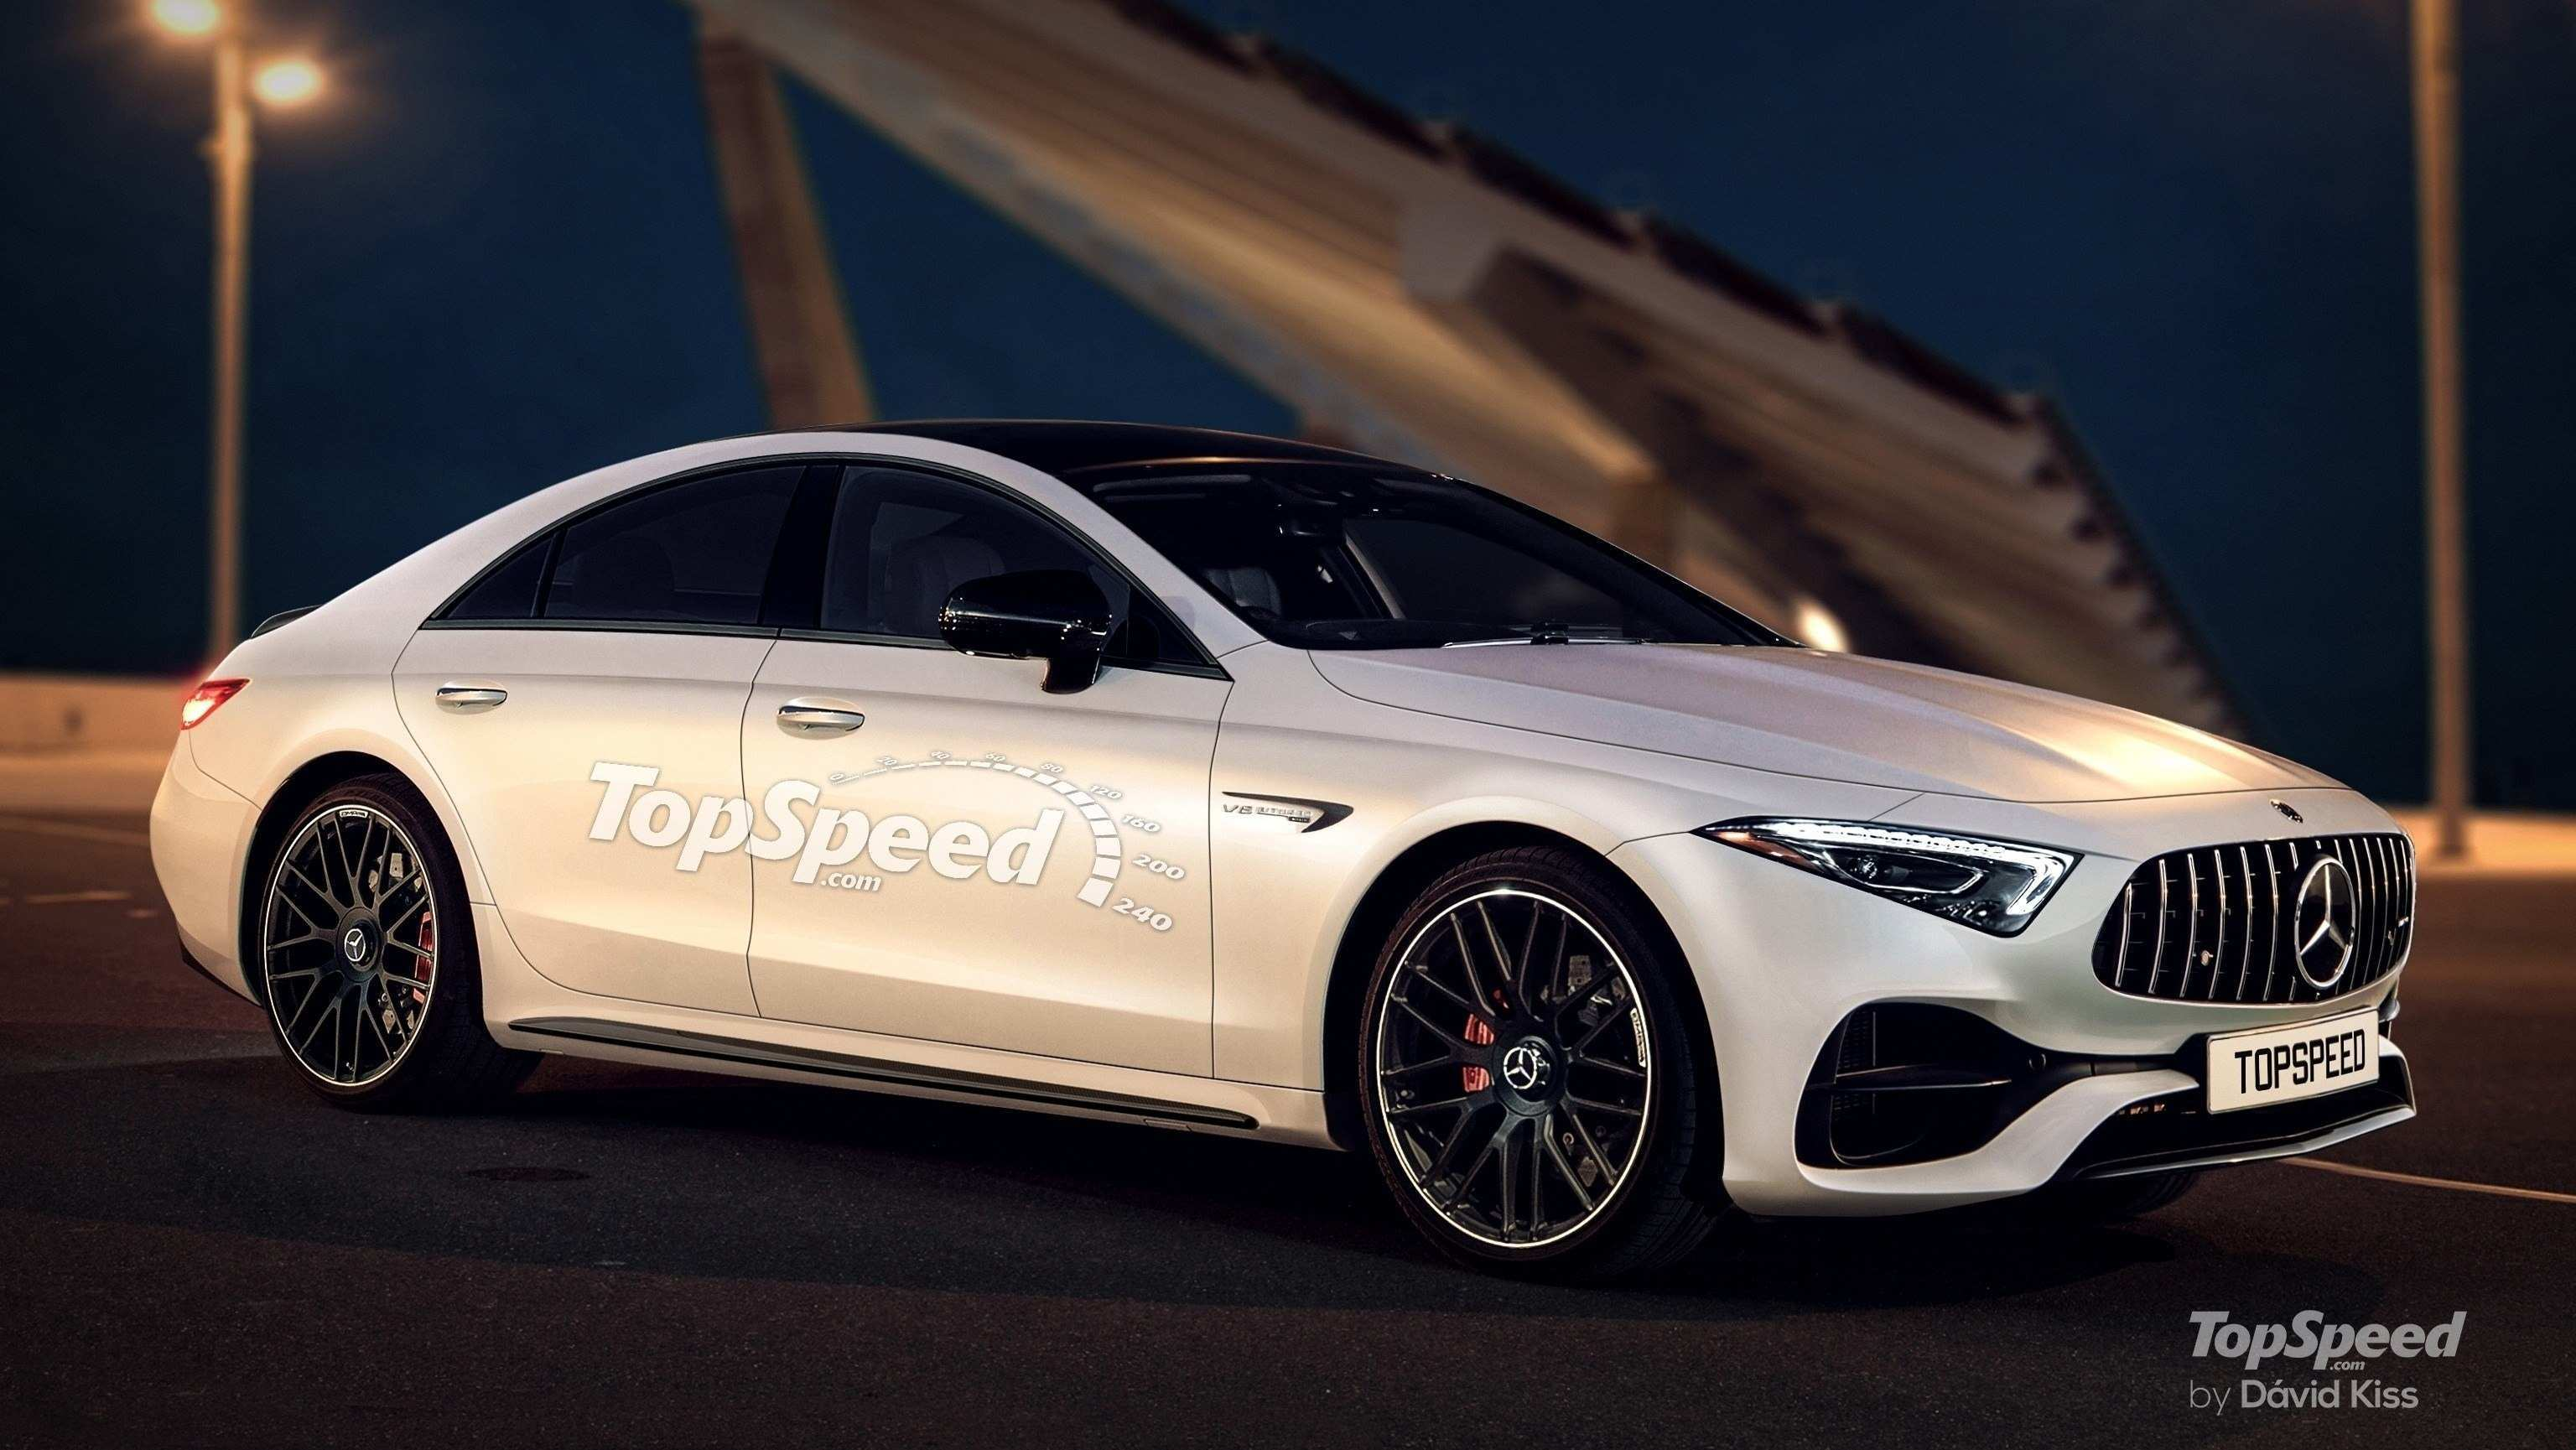 87 New 2020 Mercedes Cls Class Redesign for 2020 Mercedes Cls Class